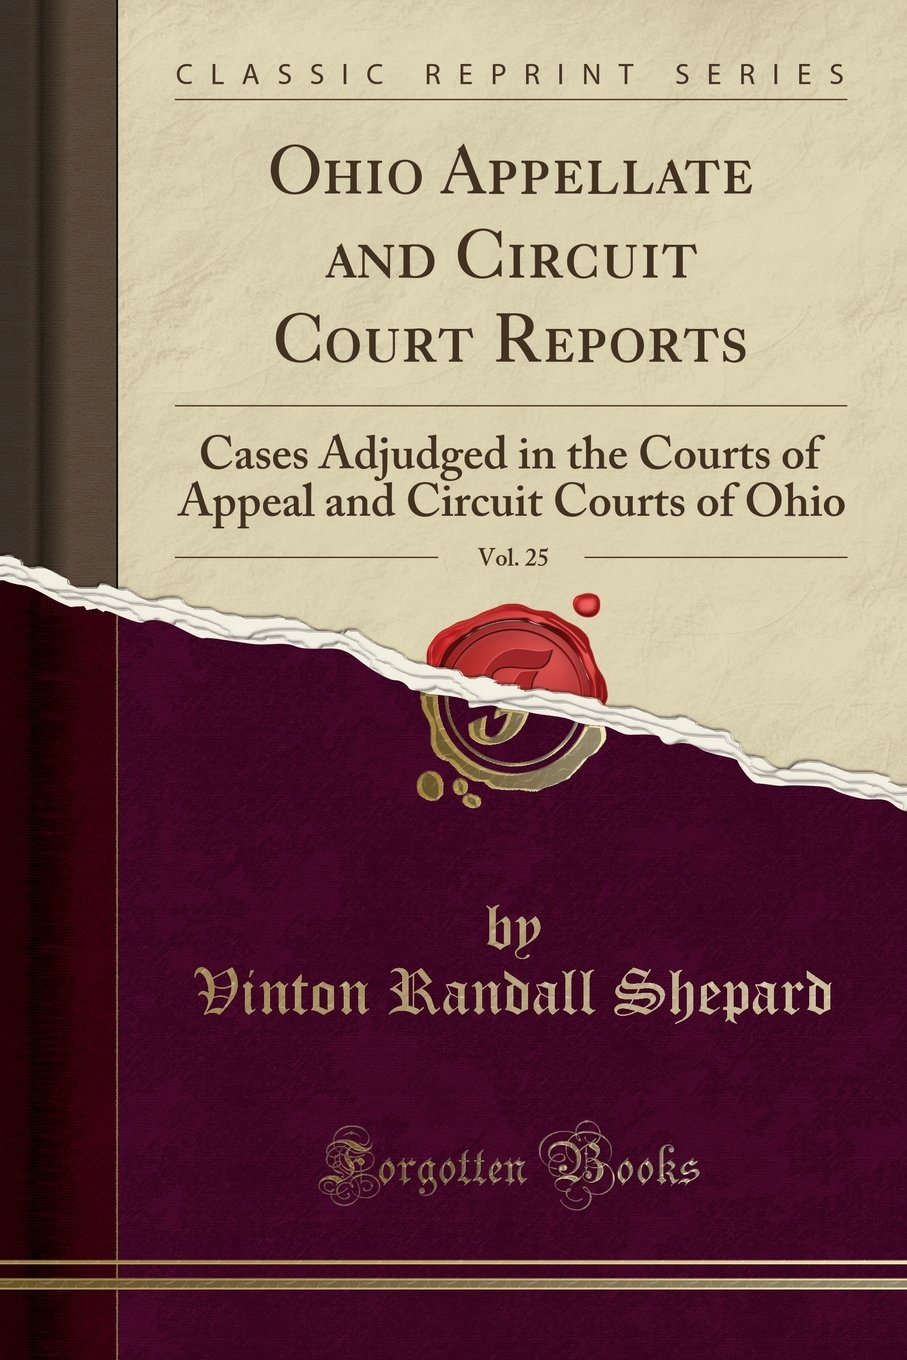 Read Online Ohio Appellate and Circuit Court Reports, Vol. 25: Cases Adjudged in the Courts of Appeal and Circuit Courts of Ohio (Classic Reprint) PDF